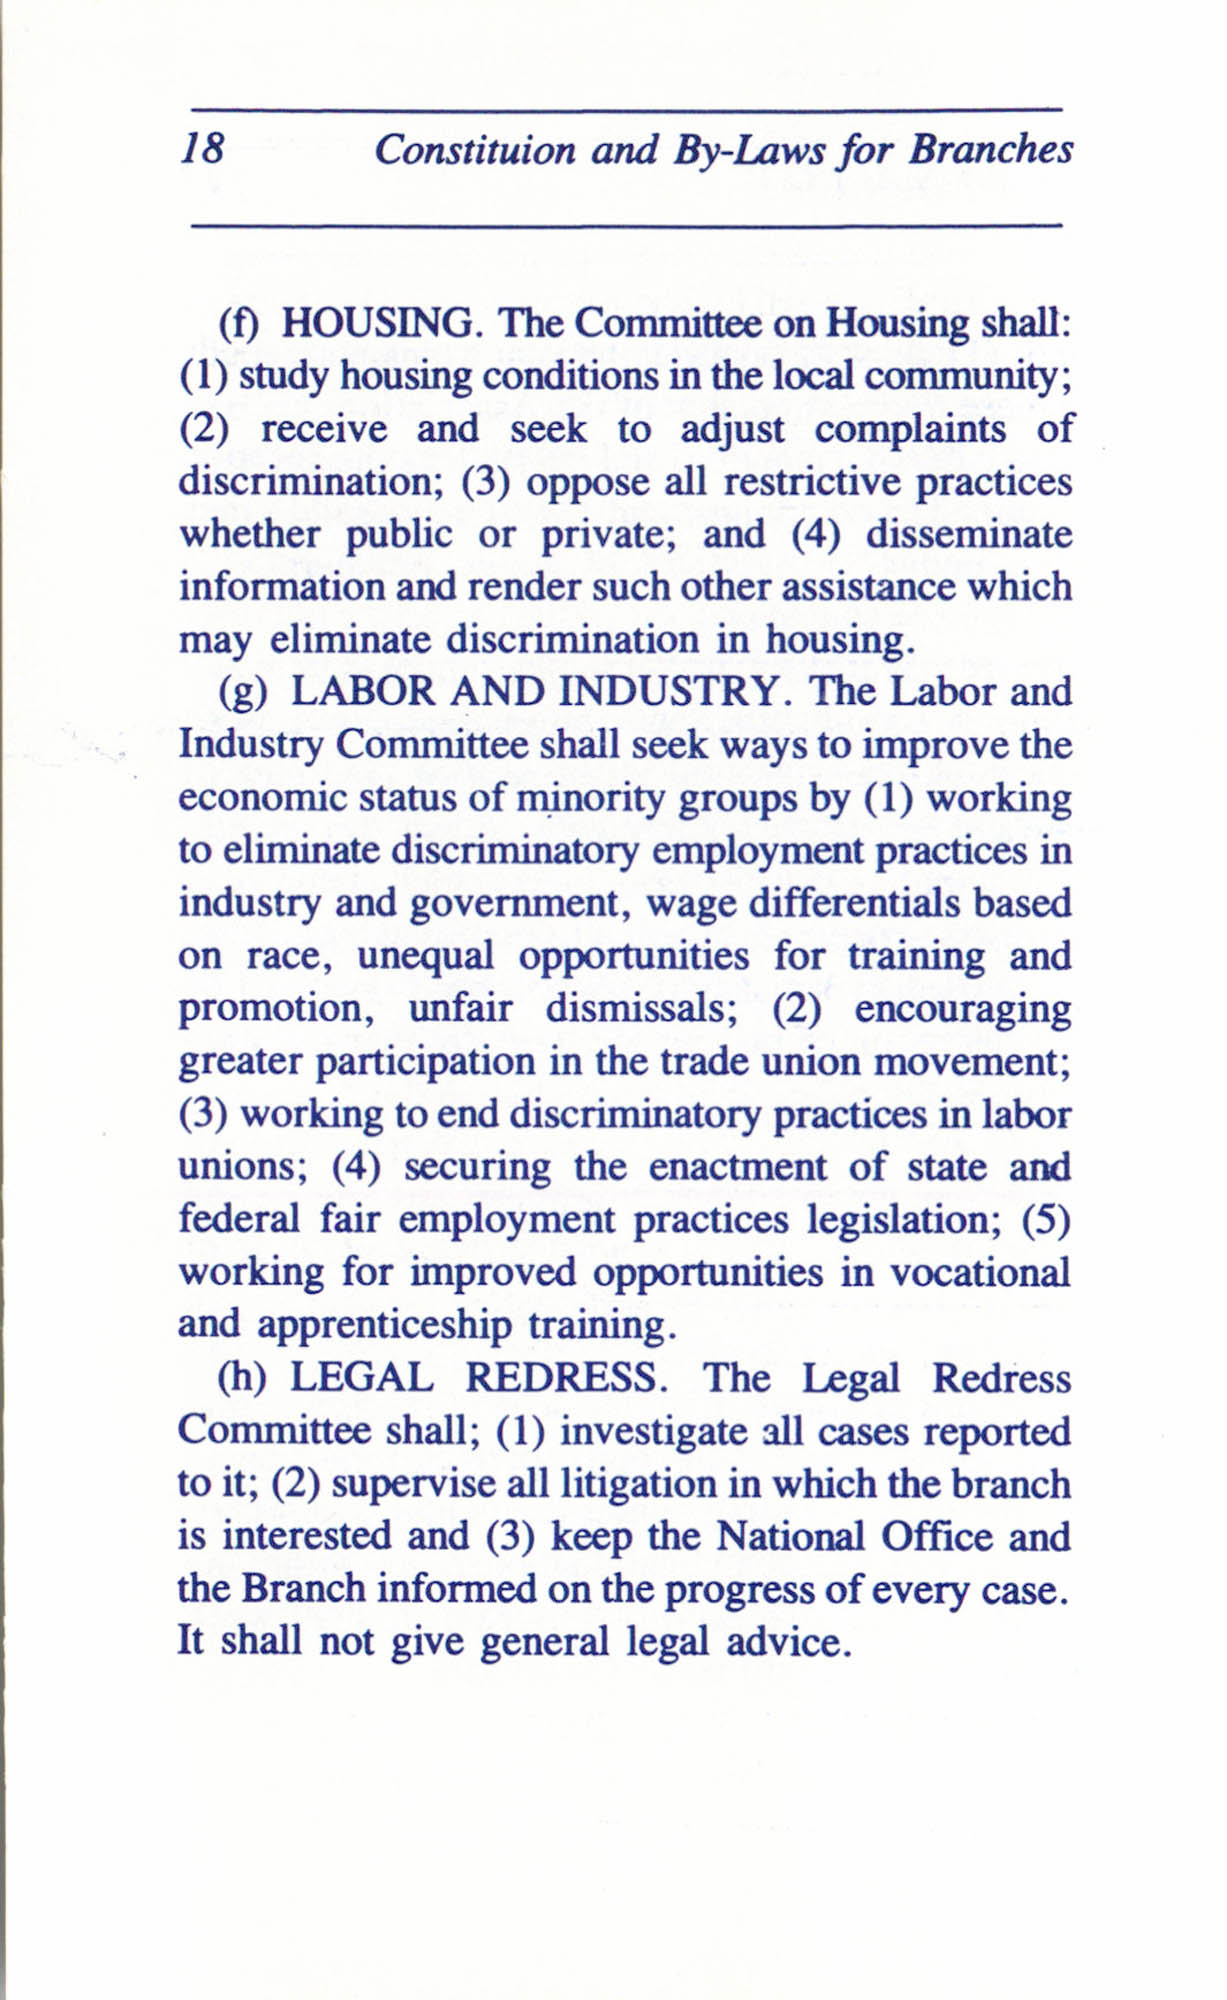 Constitution and By-Laws for Branches of the NAACP, June 1993, Page 18